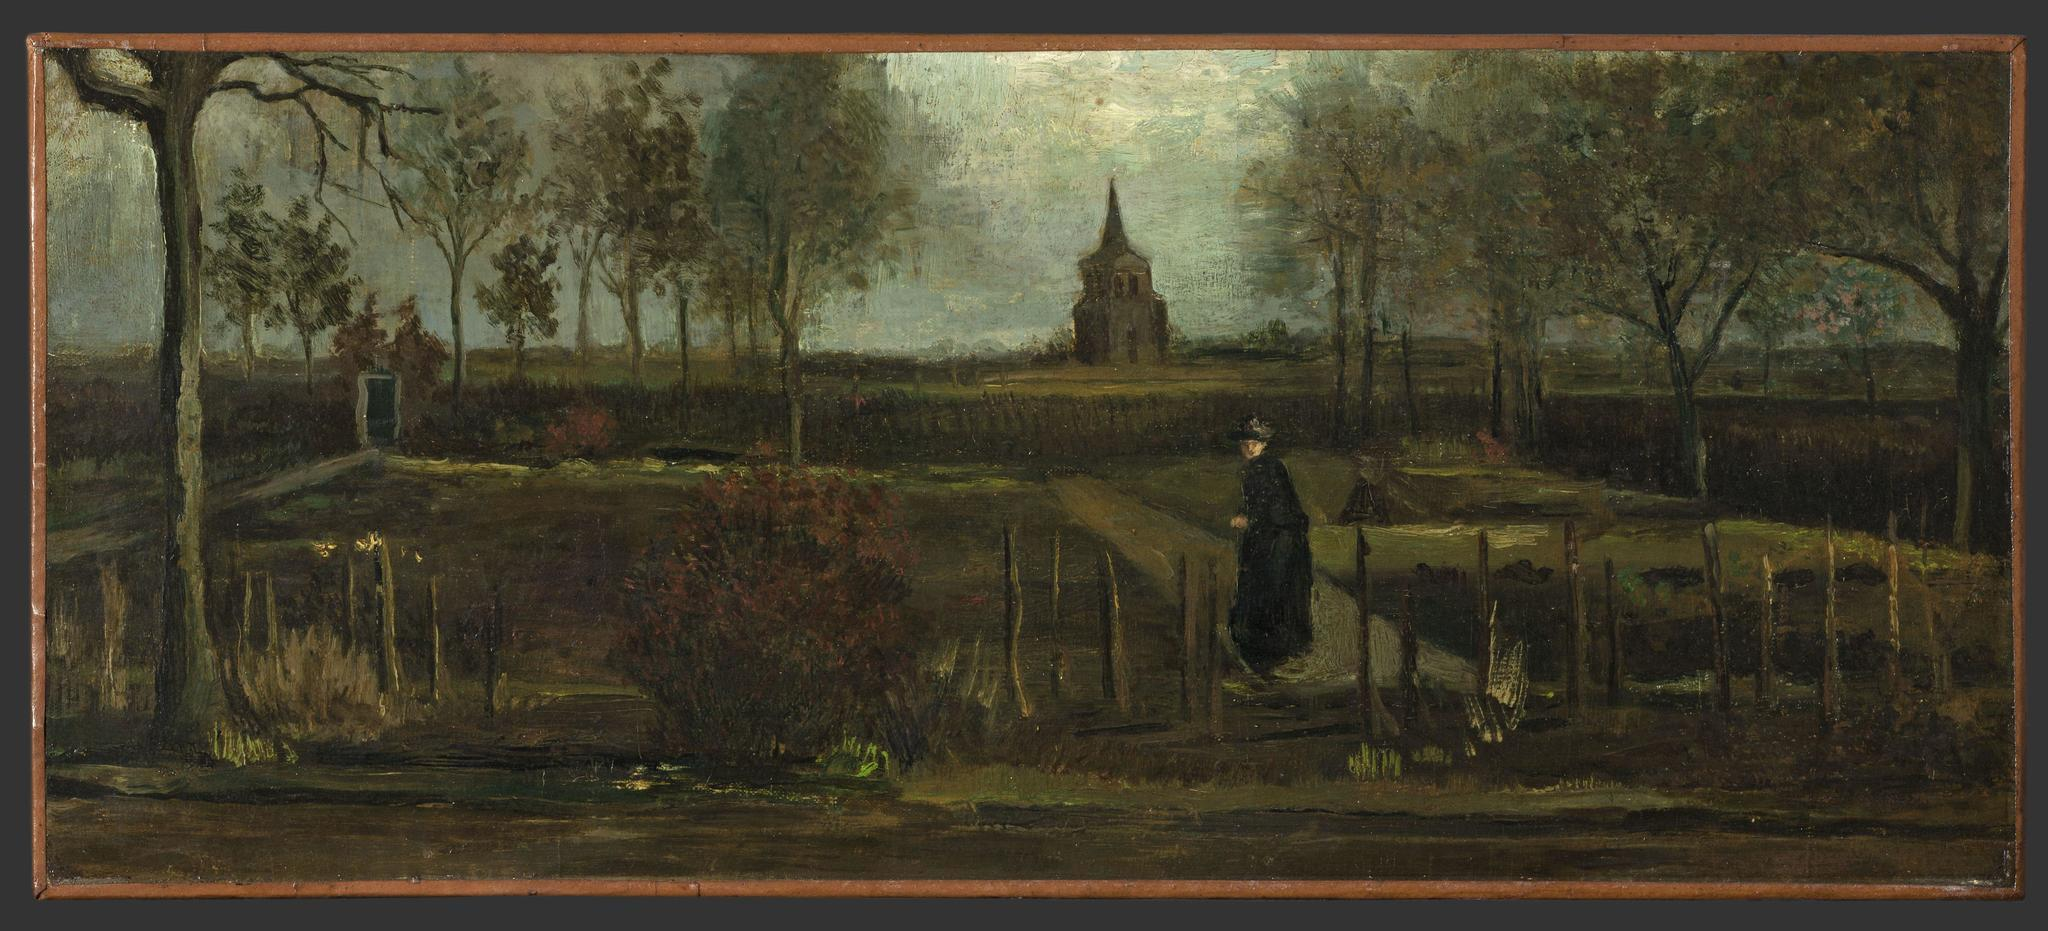 Van Gogh painting stolen from Dutch museum overnight during coronavirus lockdown